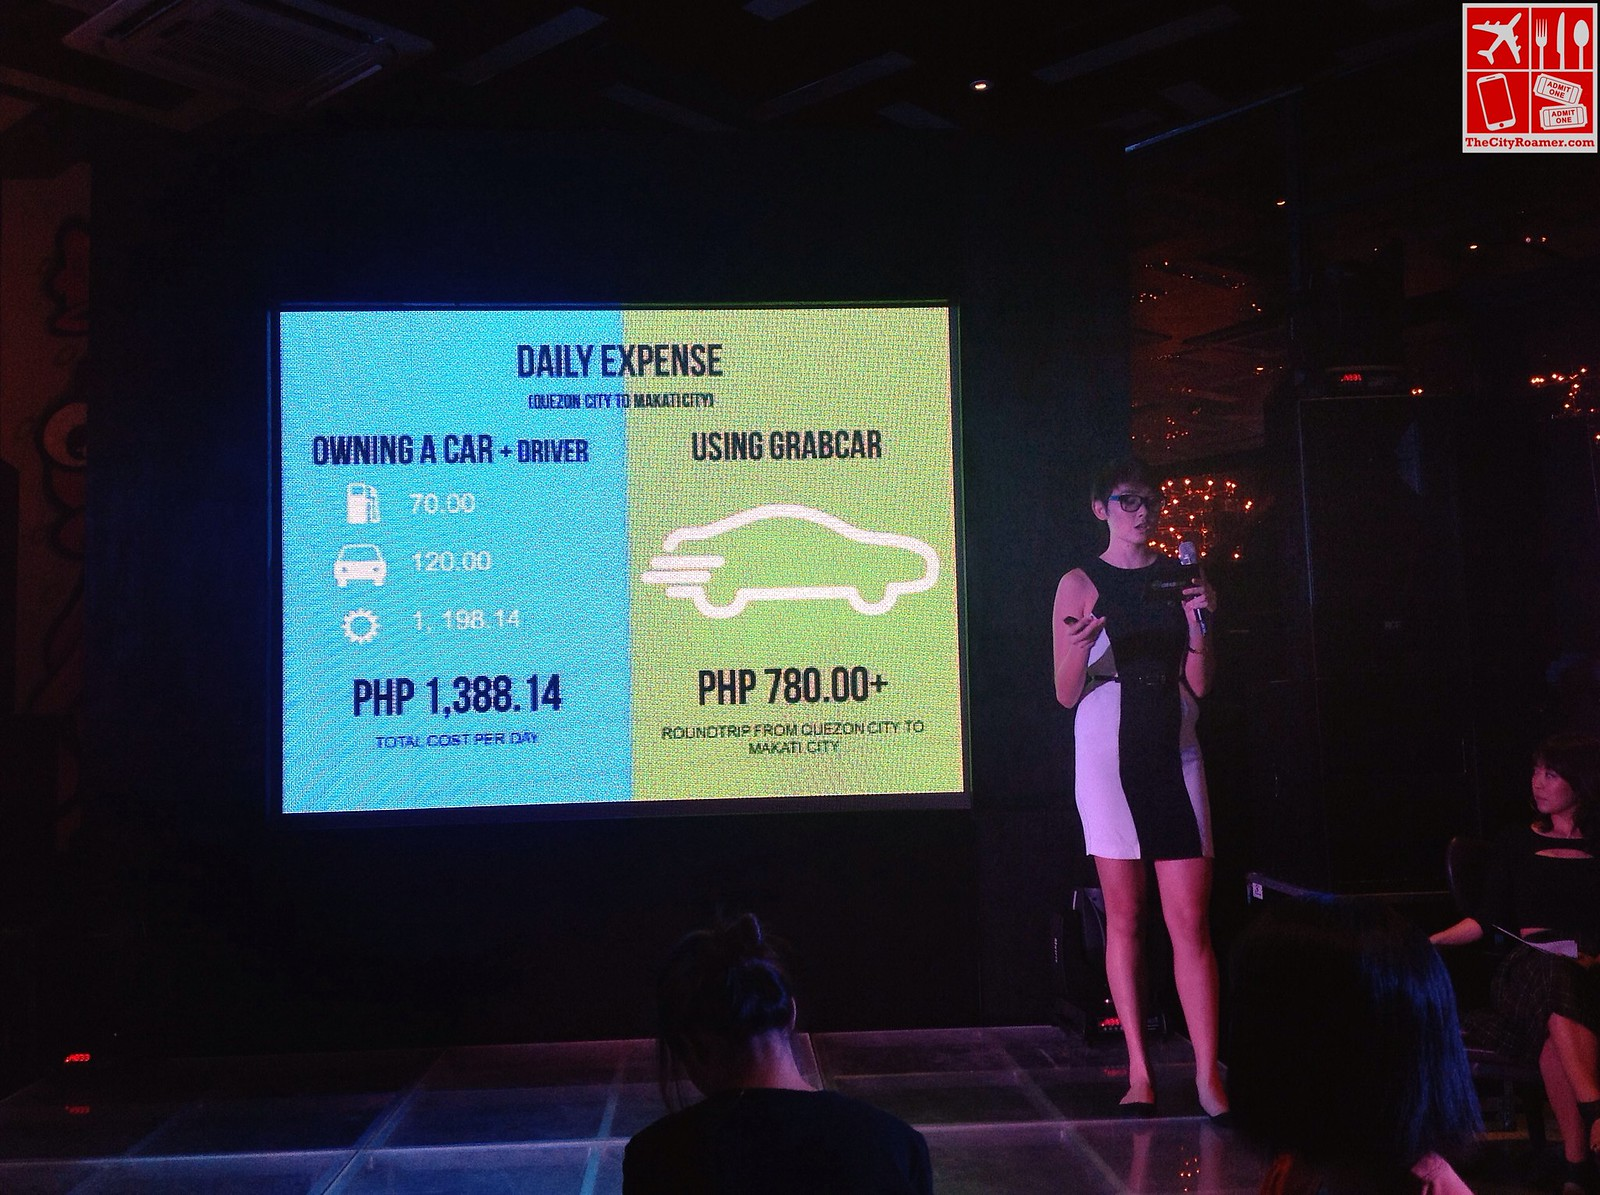 GrabTaxi VP for Marketing and Assistant General Manager Natasha Bautista presents a comparison between owning a car and using GrabCar daily during the GrabCar Media Launch